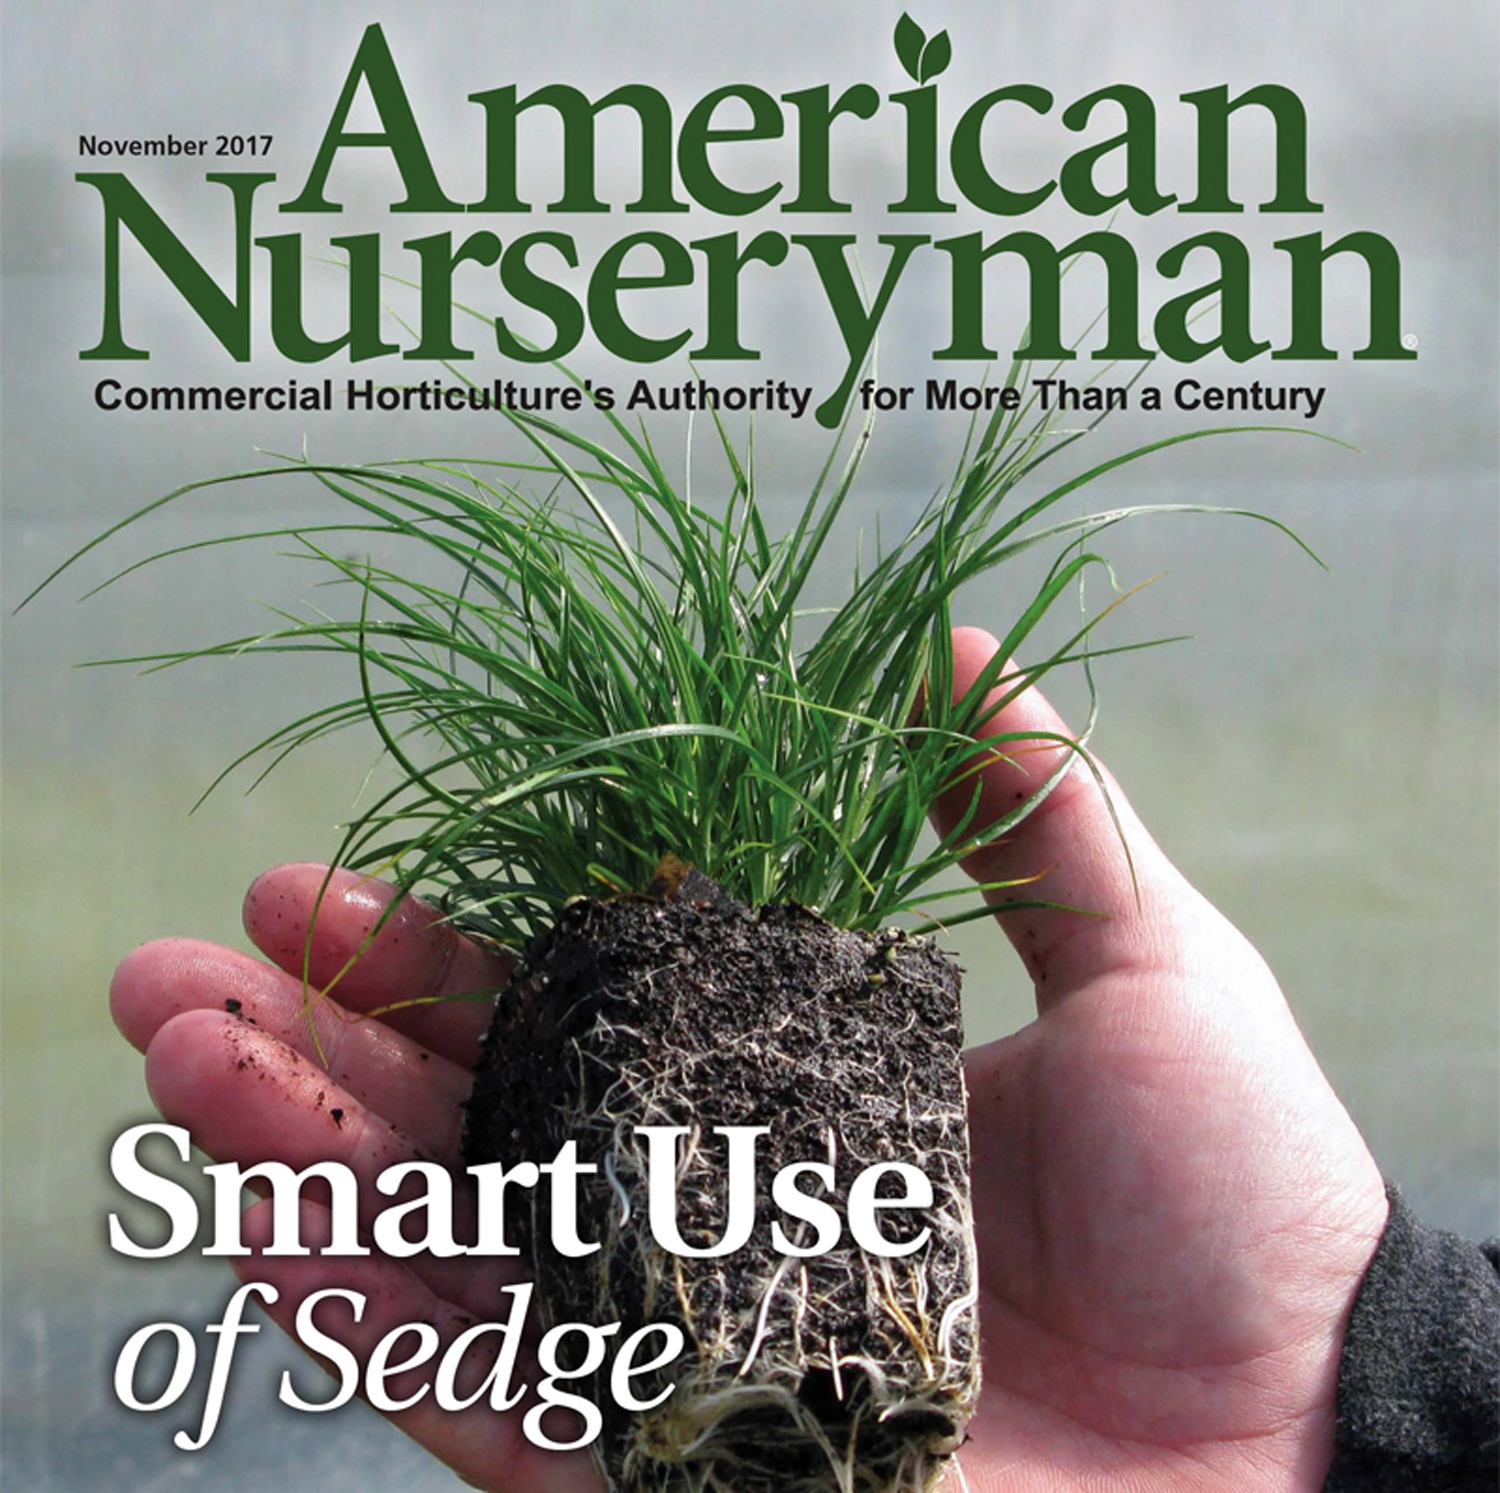 Articles from major nursery industry publications